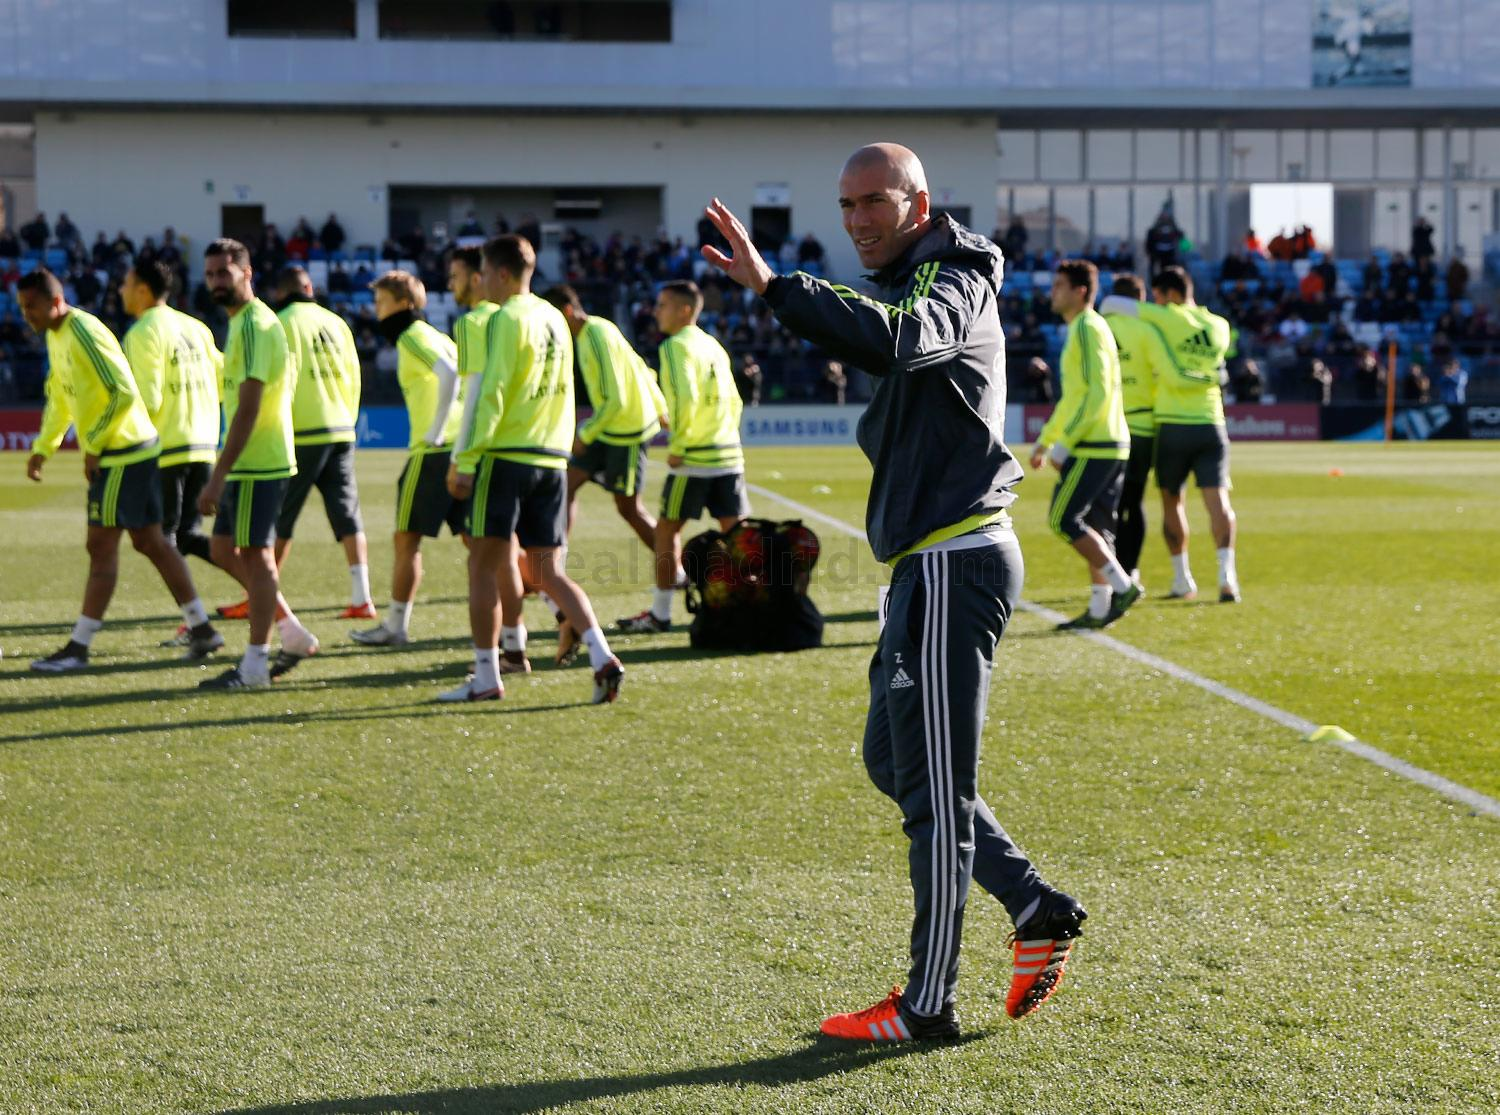 Real Madrid - Entrenamiento del Real Madrid - 05-01-2016